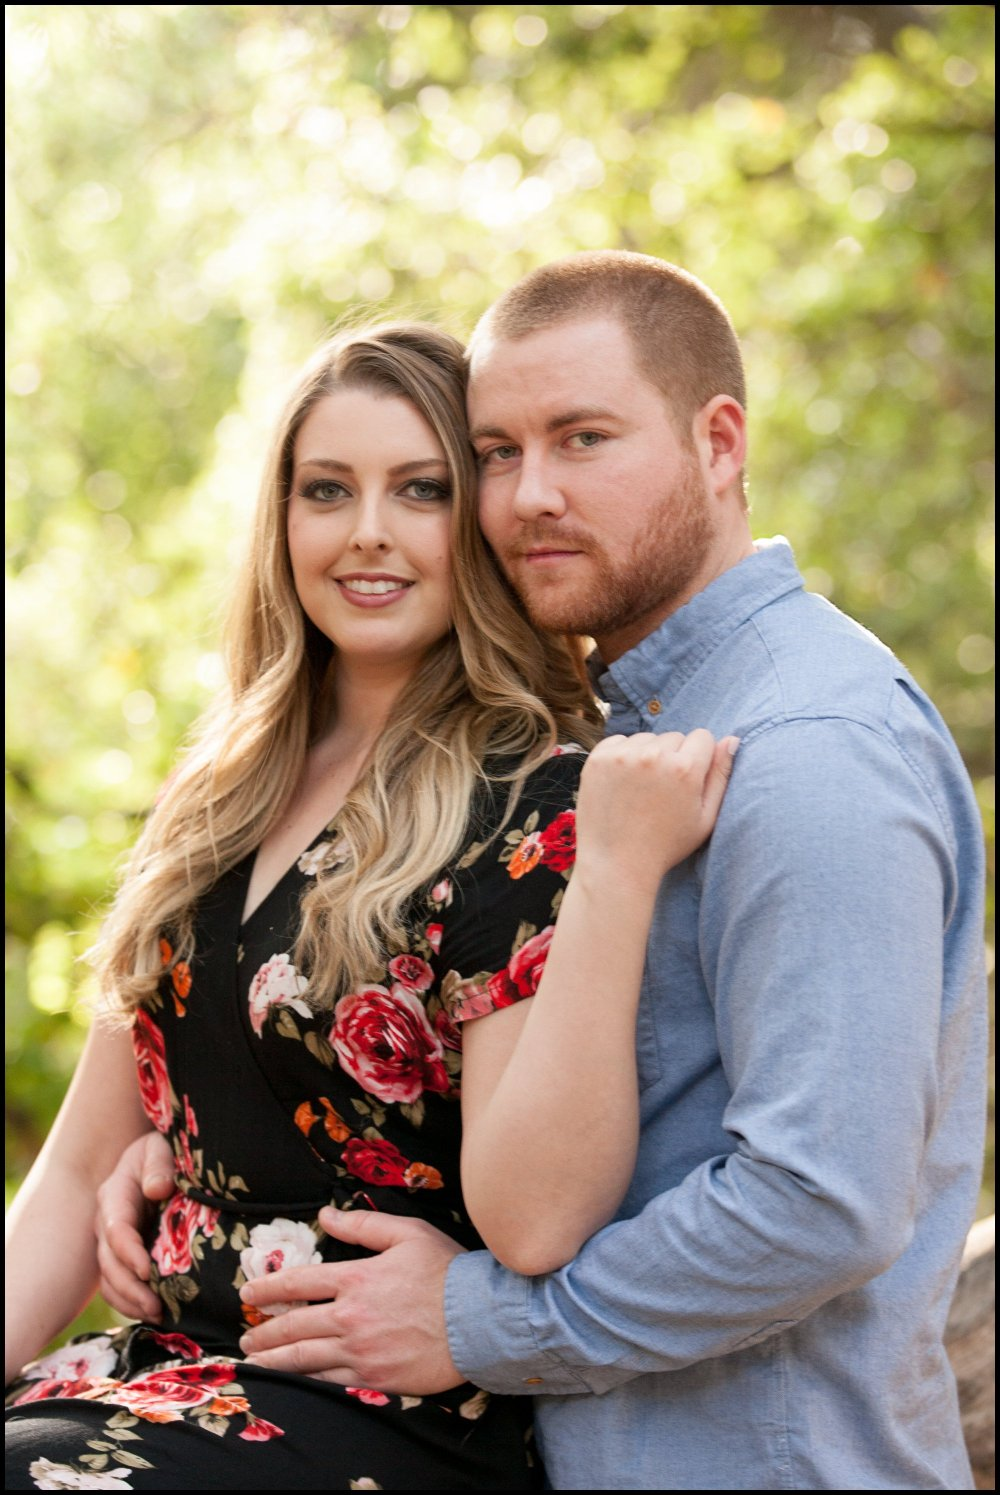 cassia_karin_photography_cj_hillary_simi_valley_california_engagement_shoot_tunnel_trees_love-14.jpg